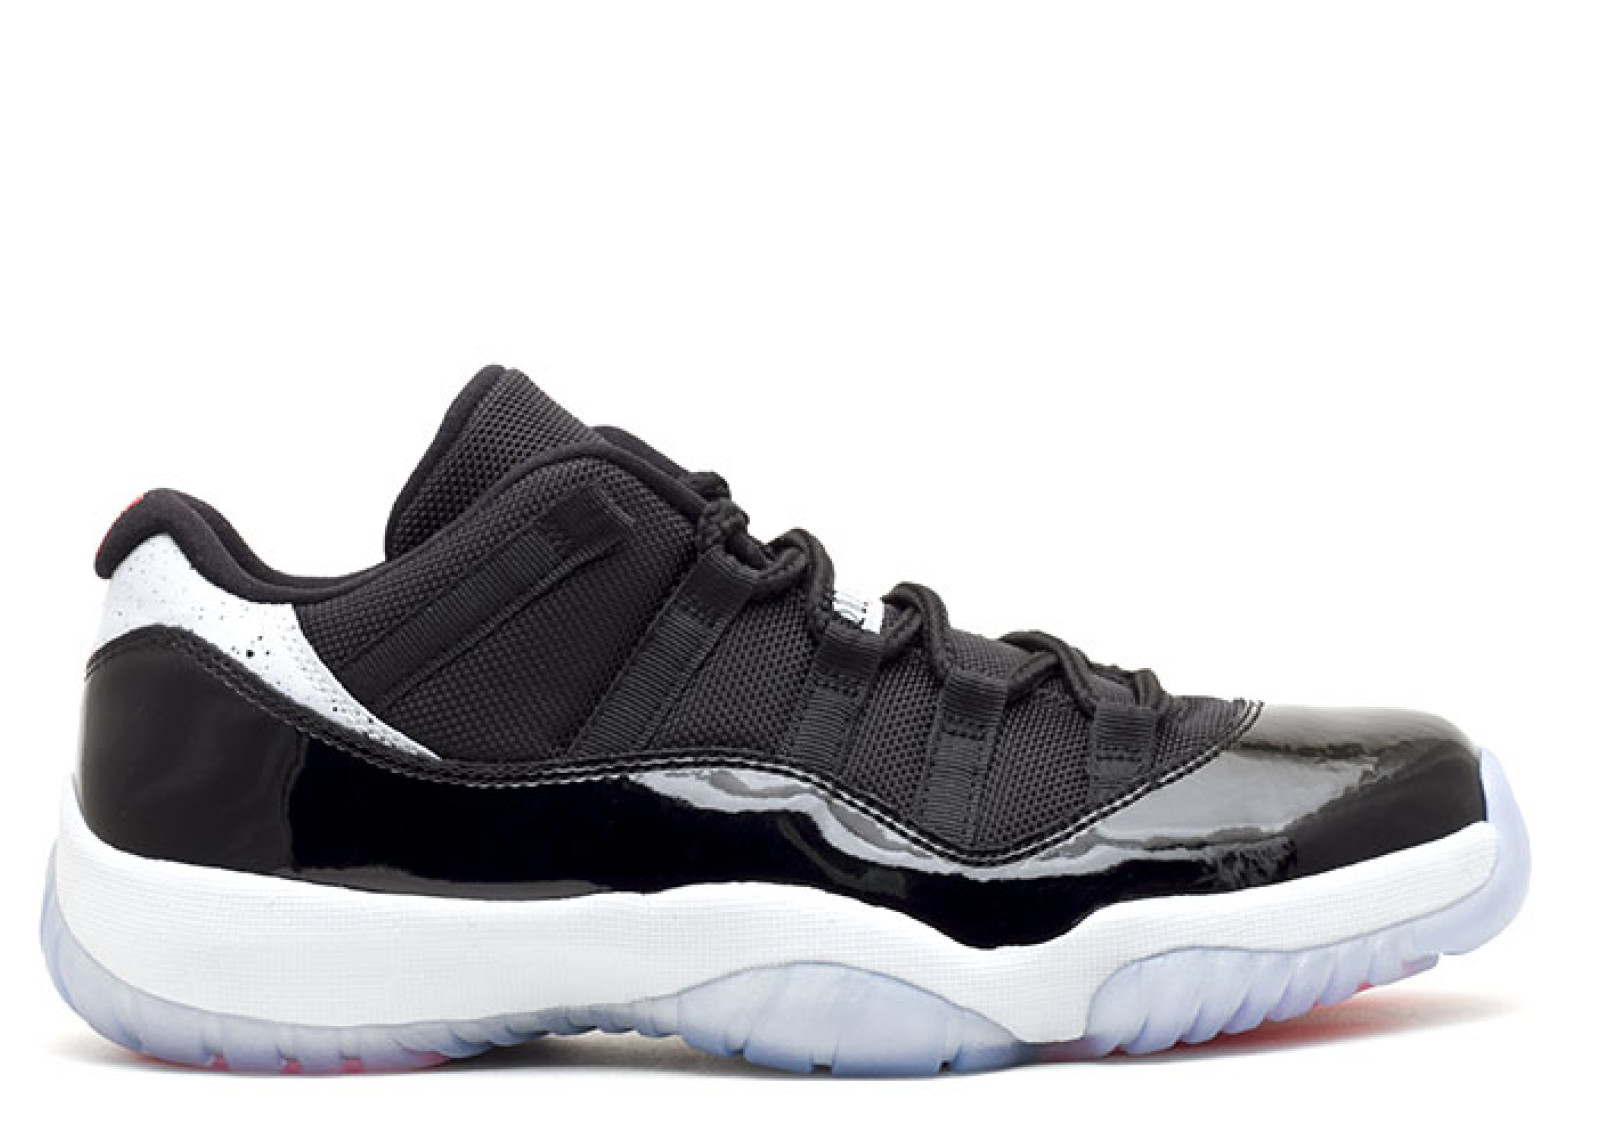 Air Jordan 11 Retro Low Infrared 23